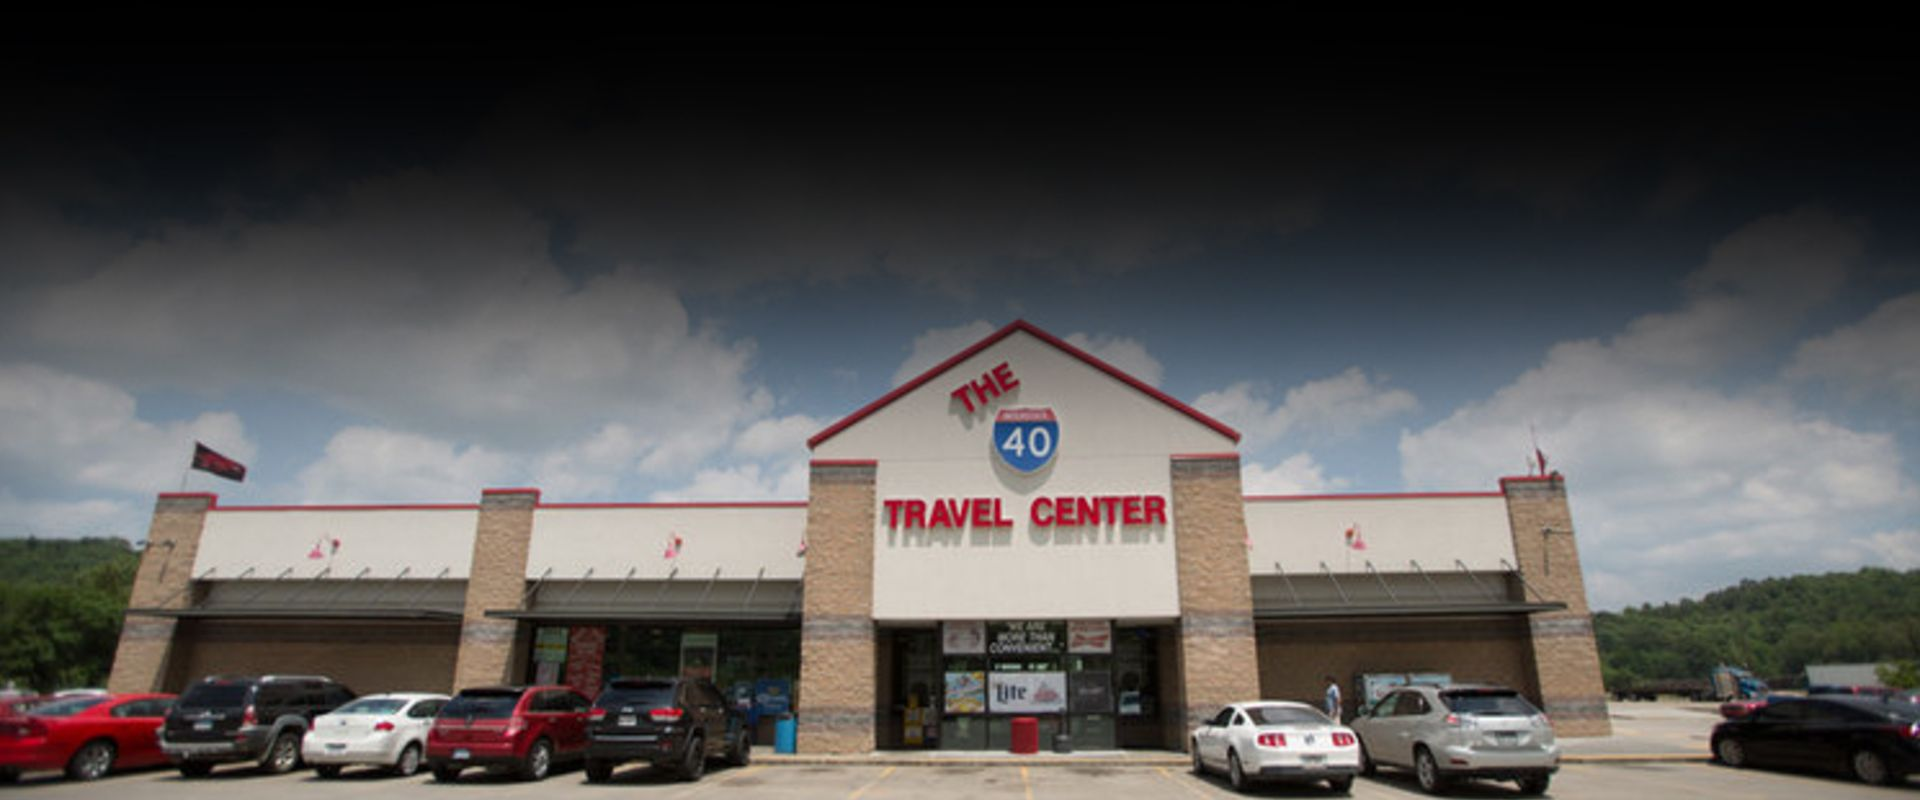 Workman's Travel Centers are dedicated to providing our customers an environment that is clean, friendly, and professional with a variety of merchandise, quality food, and exceptional service.